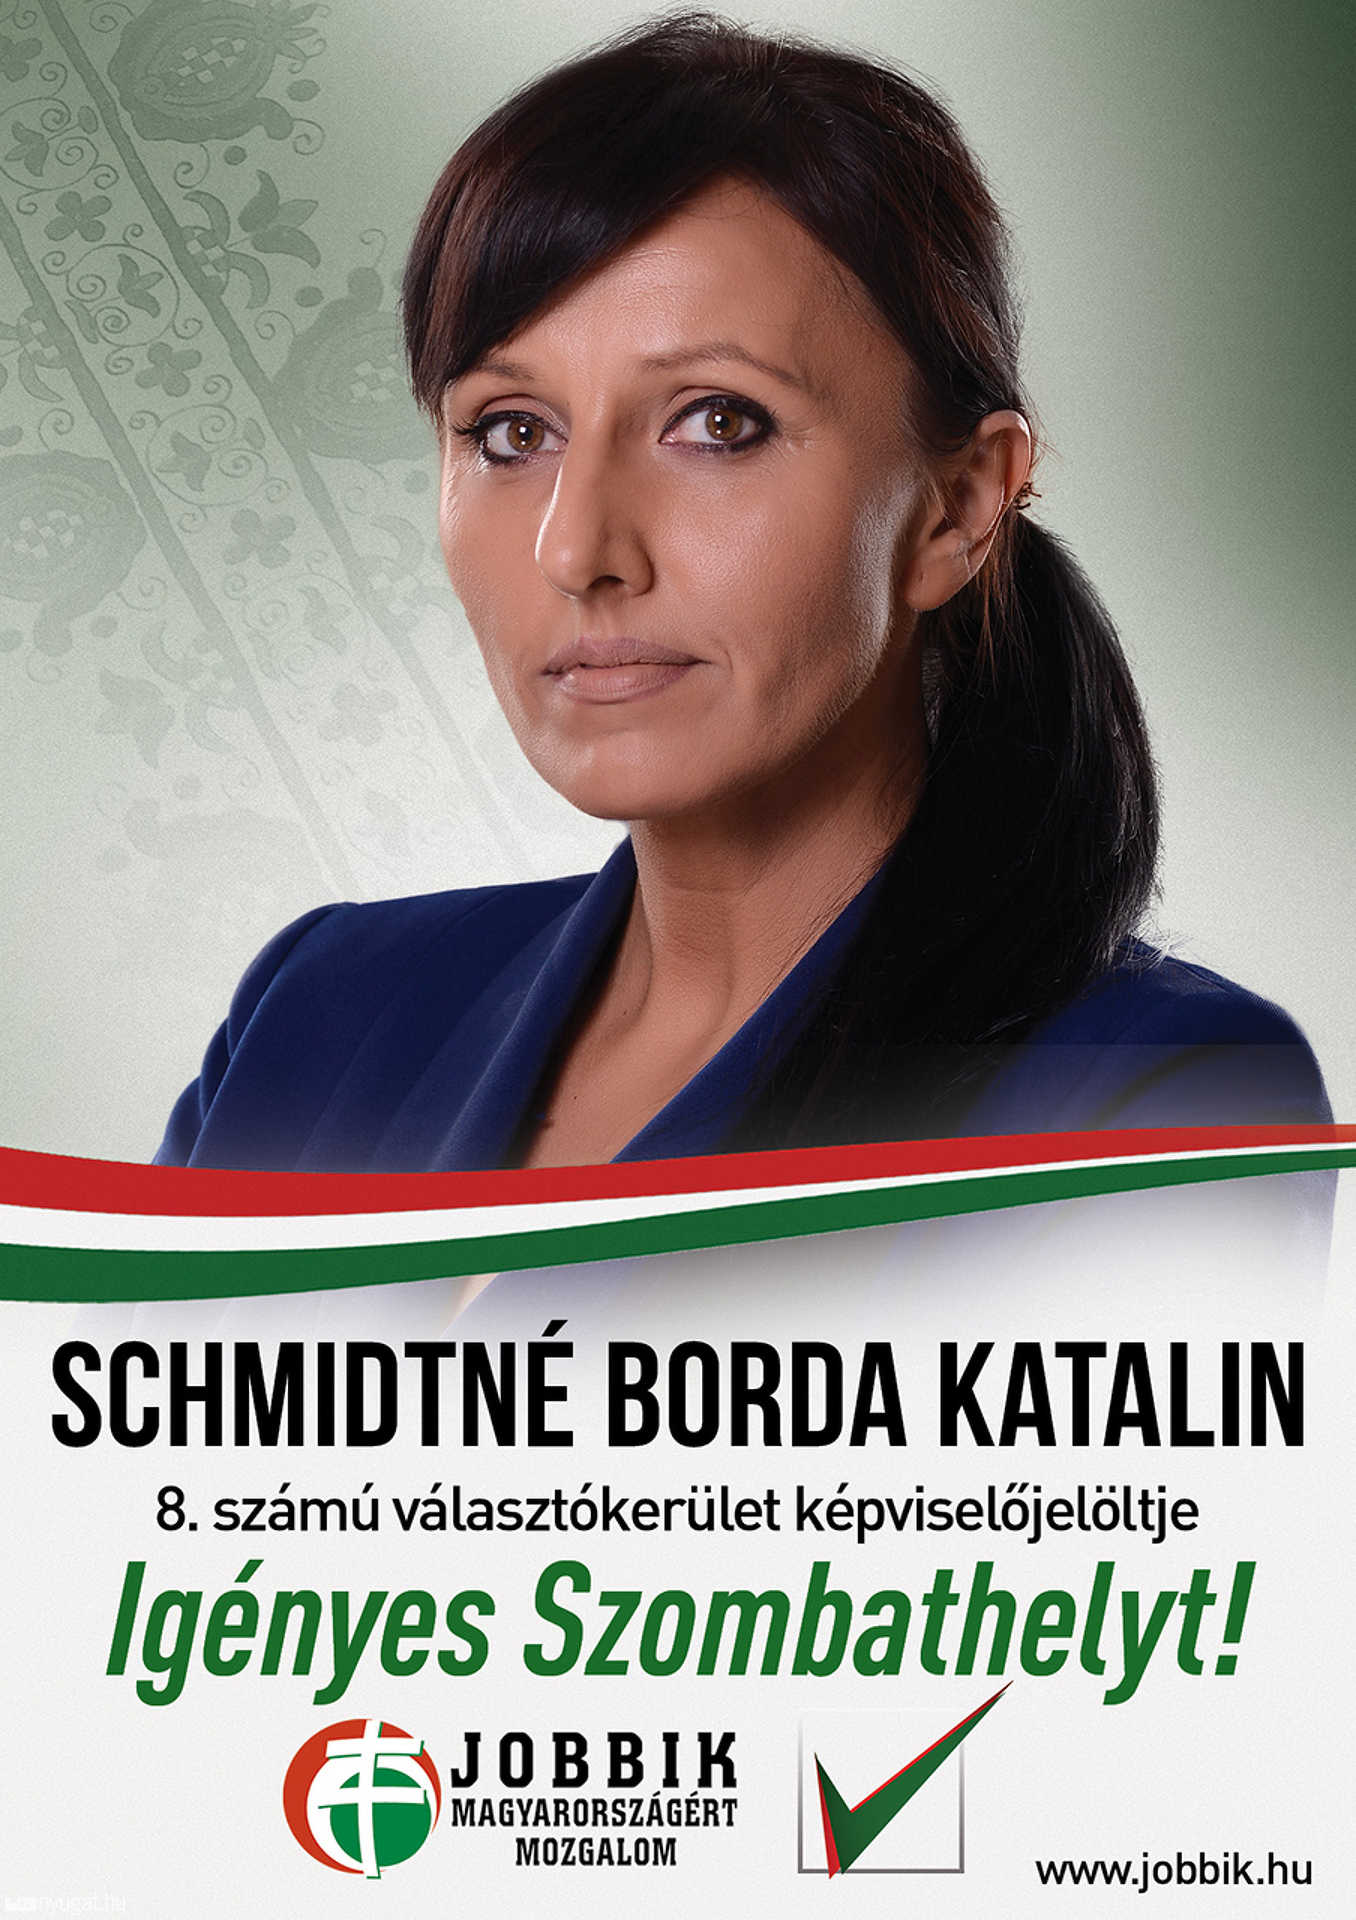 Schmidtné Borda Katalin